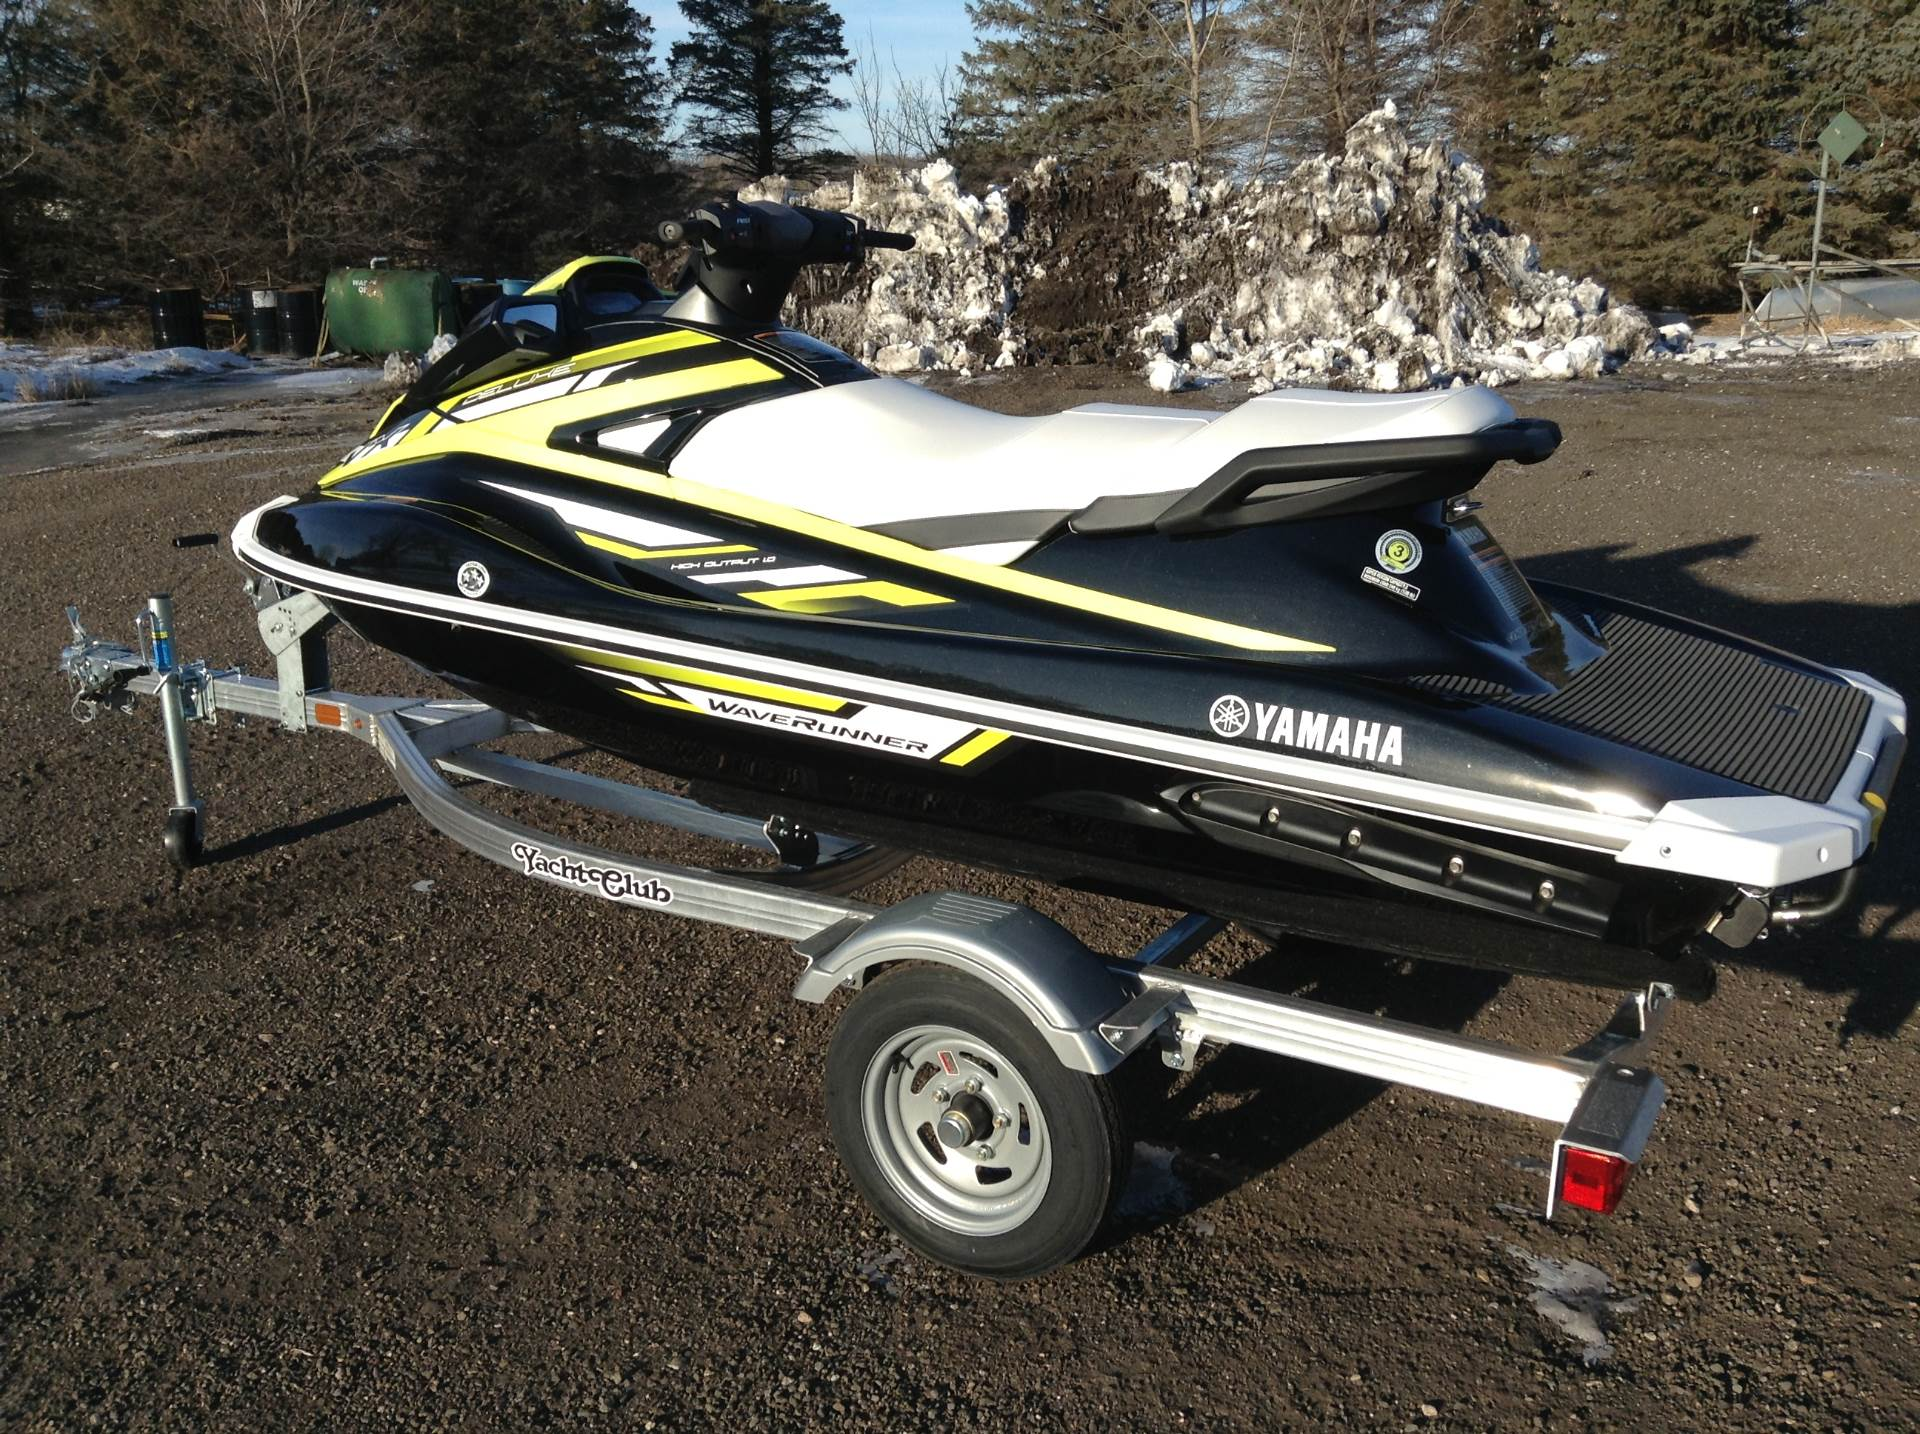 2019 Yamaha VX Deluxe for sale 1562